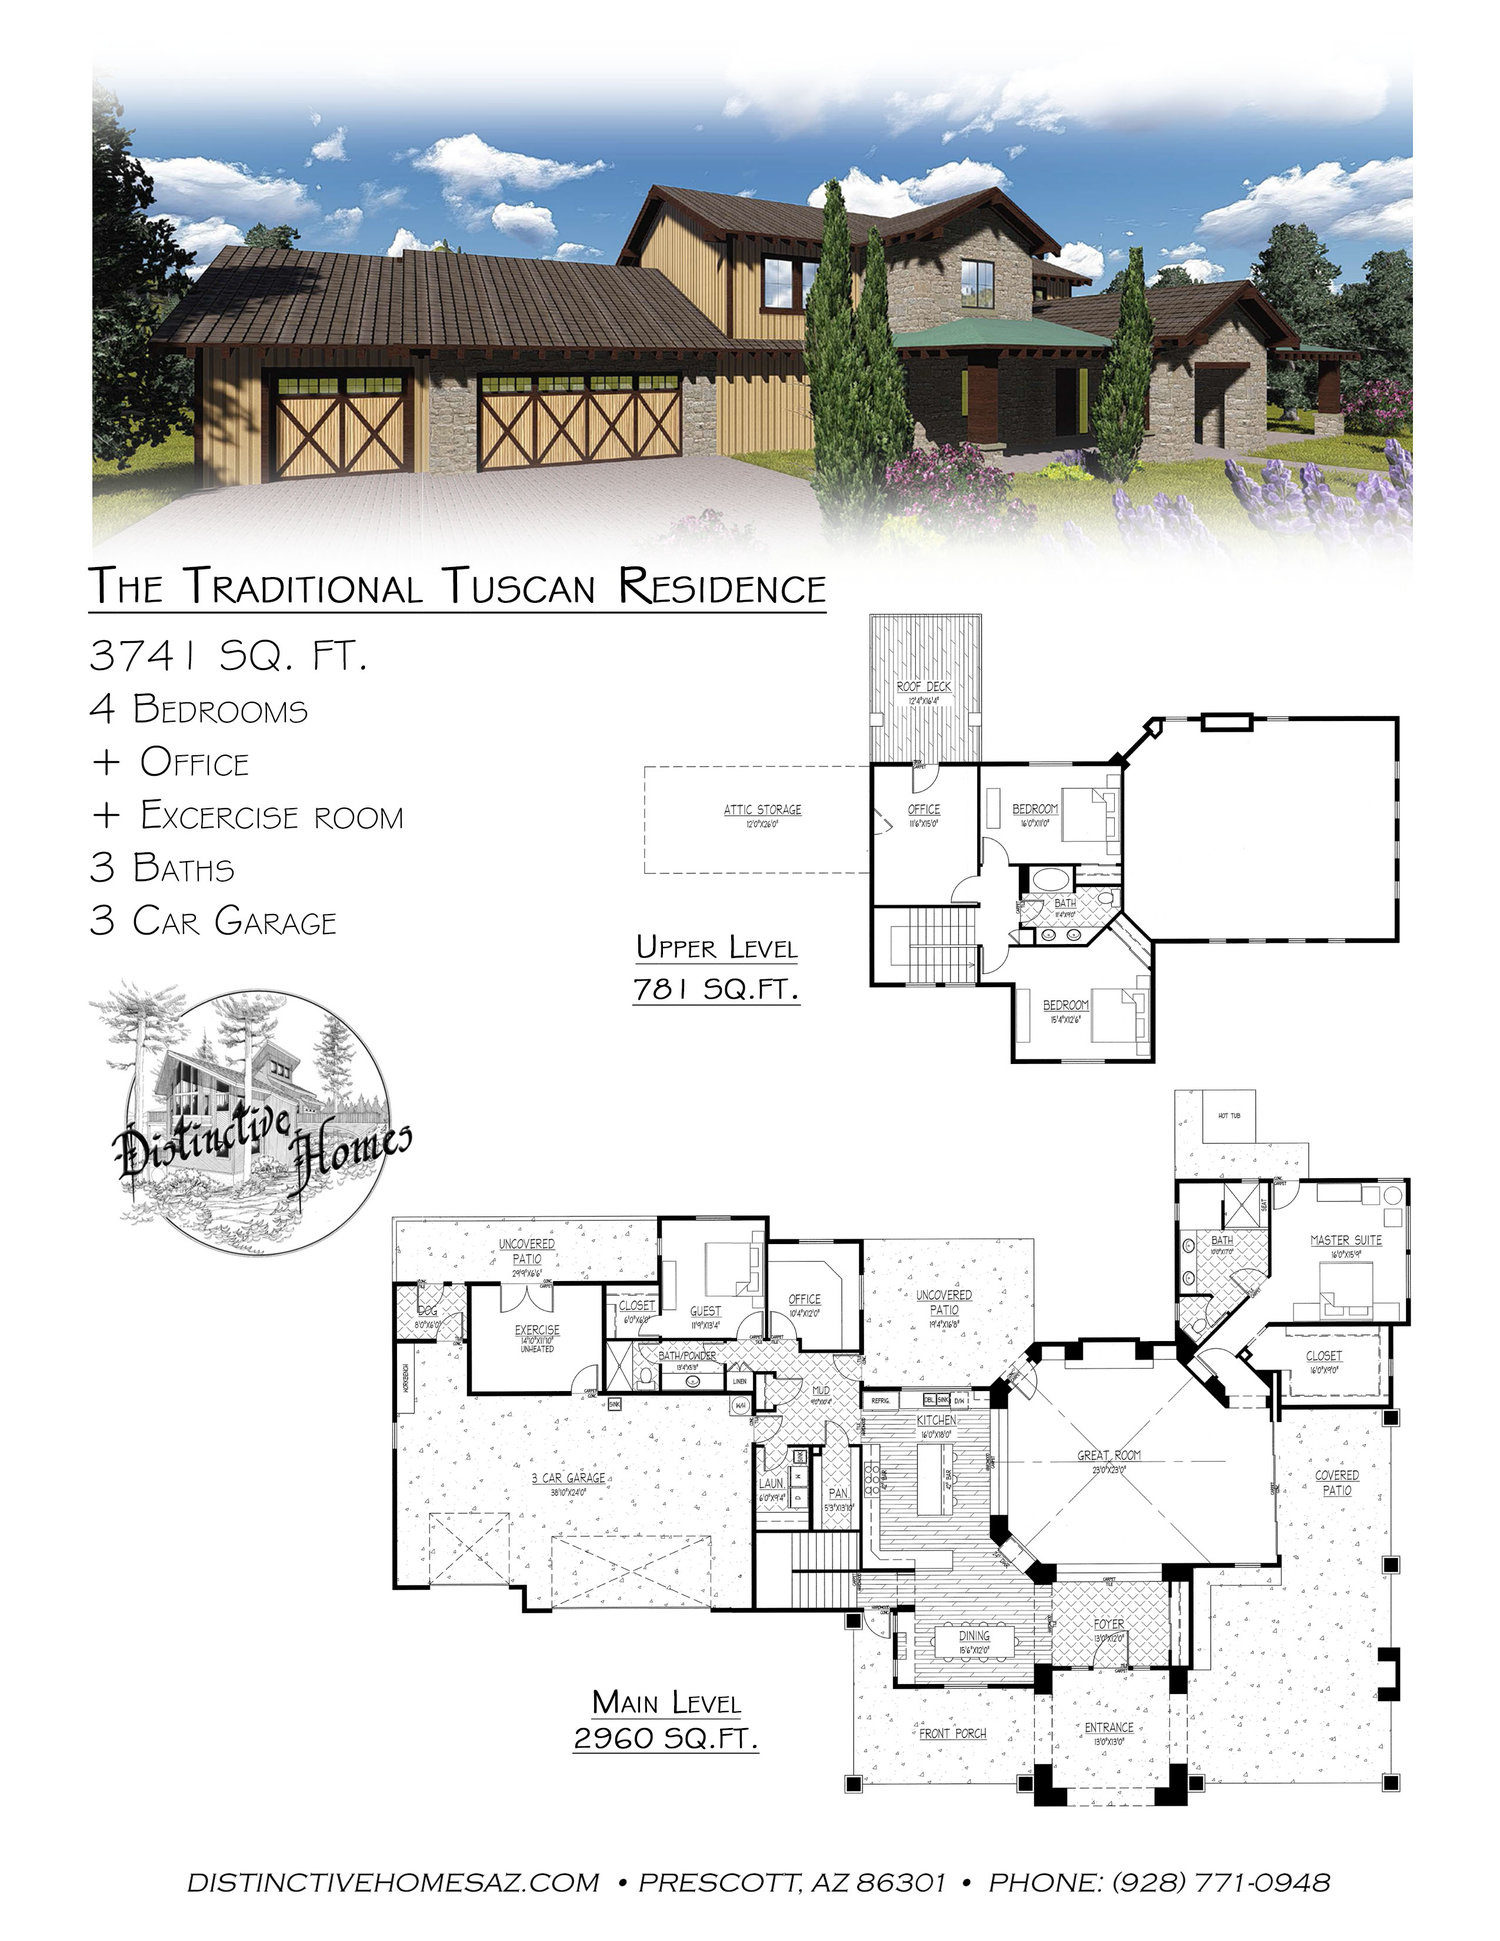 Tuscan — Distinctive Homes & Architecture on home plans with breakfast nook, home plans with master suite, home plans with den, home plans with water view, home plans with open floor plan, home plans with covered lanai, home plans with barn, home plans with tennis court, home plans with sauna, home plans with two story, home plans with study, home plans with detached, home plans with single story, home plans with carport, home plans with exercise room, home plans with covered patio, home plans with wine cellar, home plans with screened in porch, home plans with library, home plans with 2 kitchens,